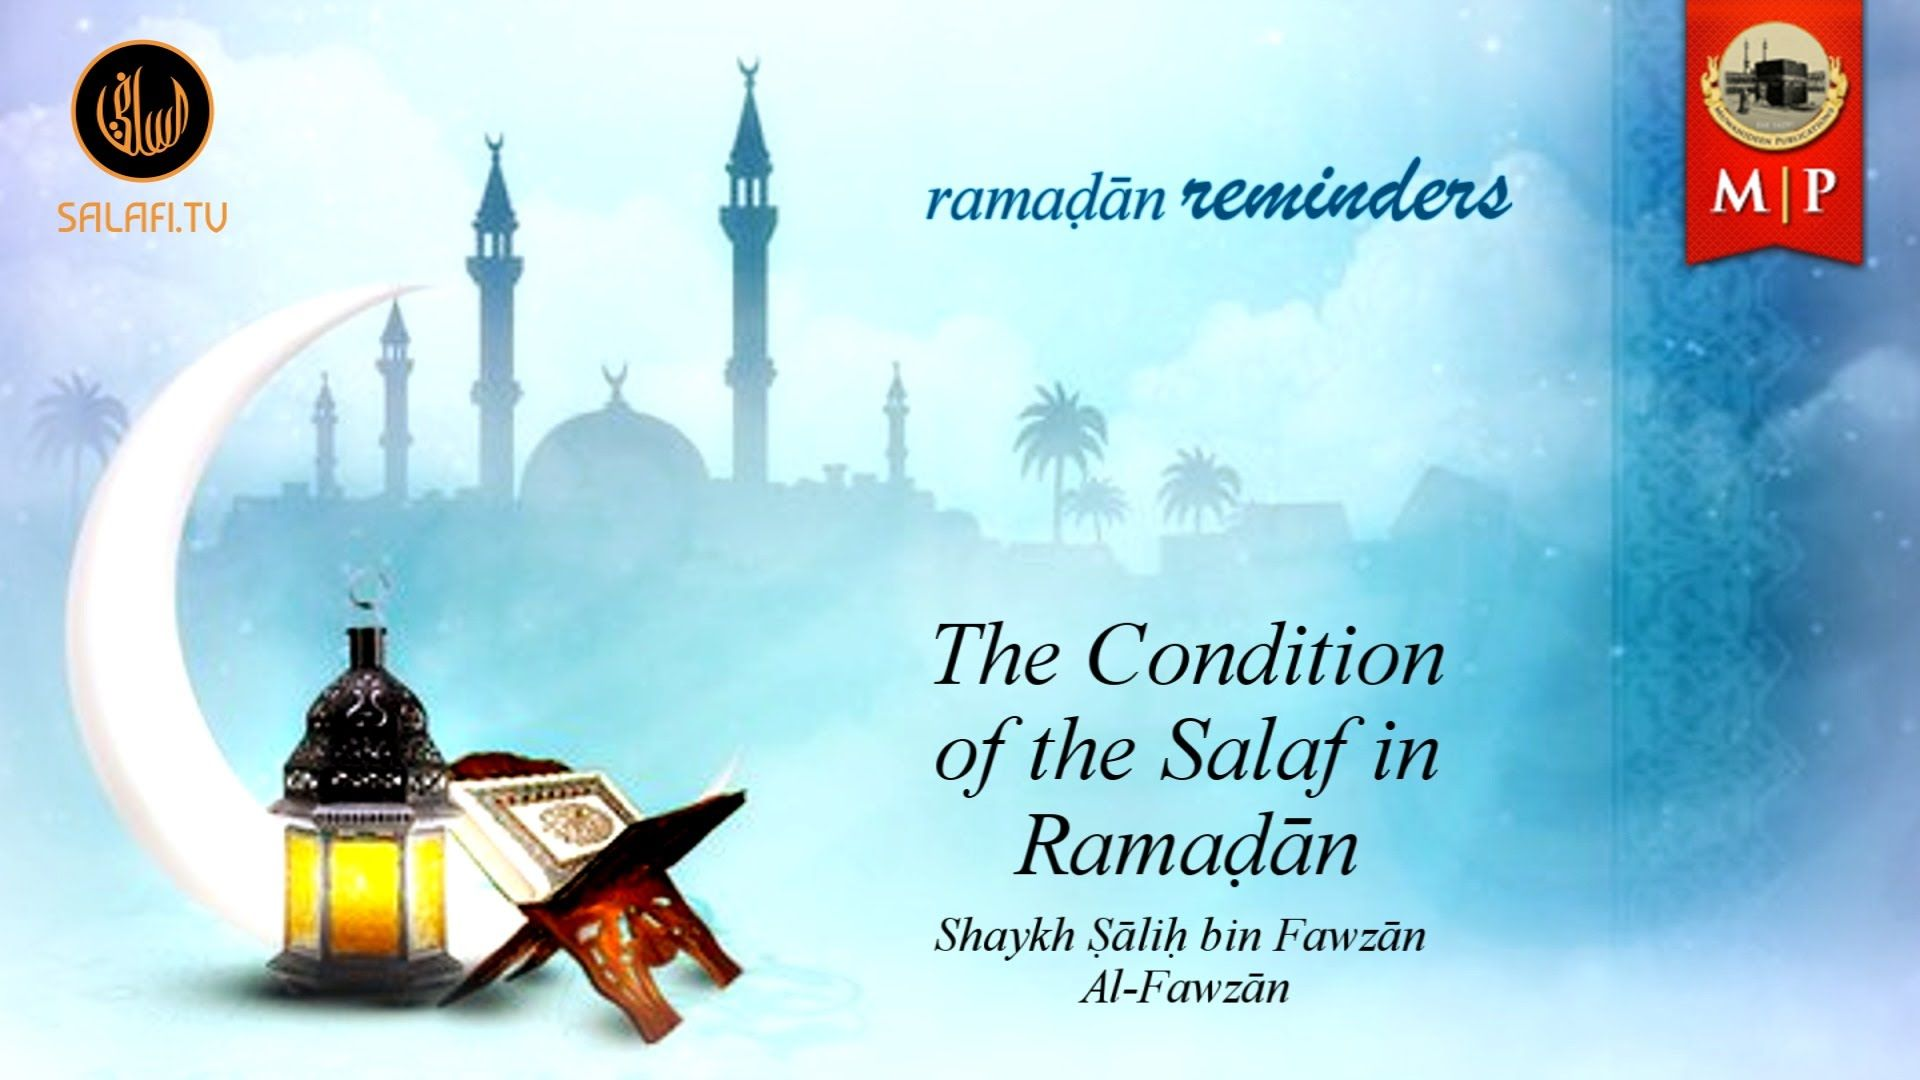 Ramaḍān Reminders #1 | The Condition of the Salaf in Ramaḍān - YouTube